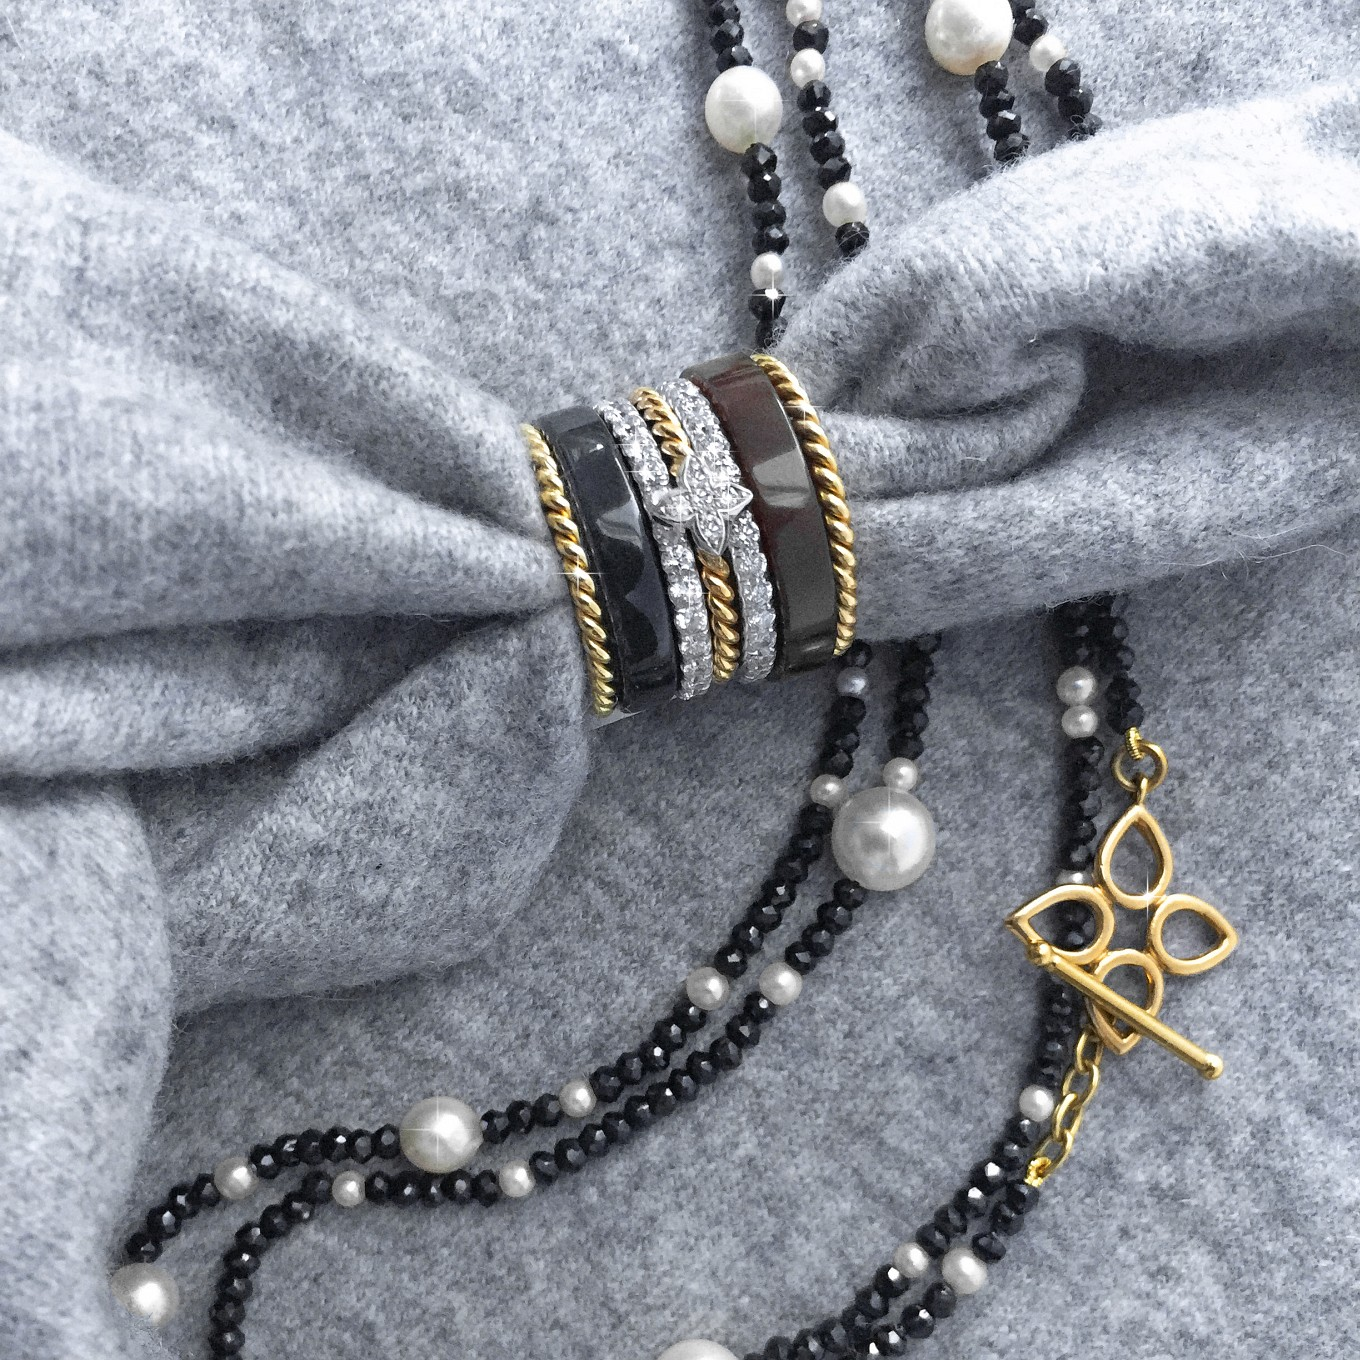 BLACK SPINEL NECKLACE WITH FRESHWATER PEARL & YELLOW GOLD CLASPBLACK JADE & CARNELIAN HARDSTONE  BANDS, BRAIDED BANDS & SEVILLA MOTIF BRAIDED BANDS